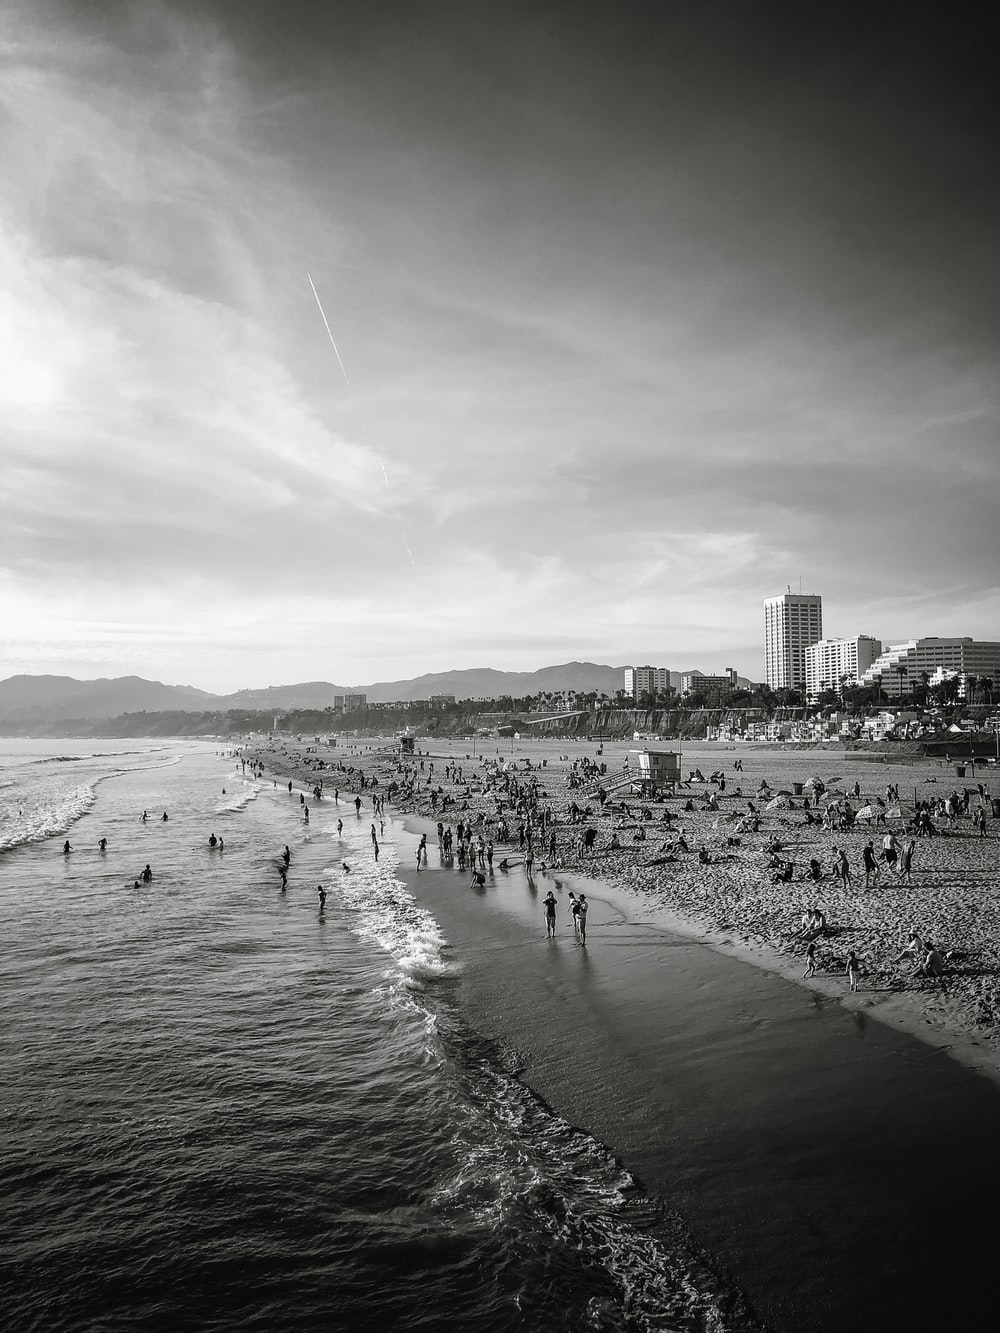 grayscale photography of people gathered near shore